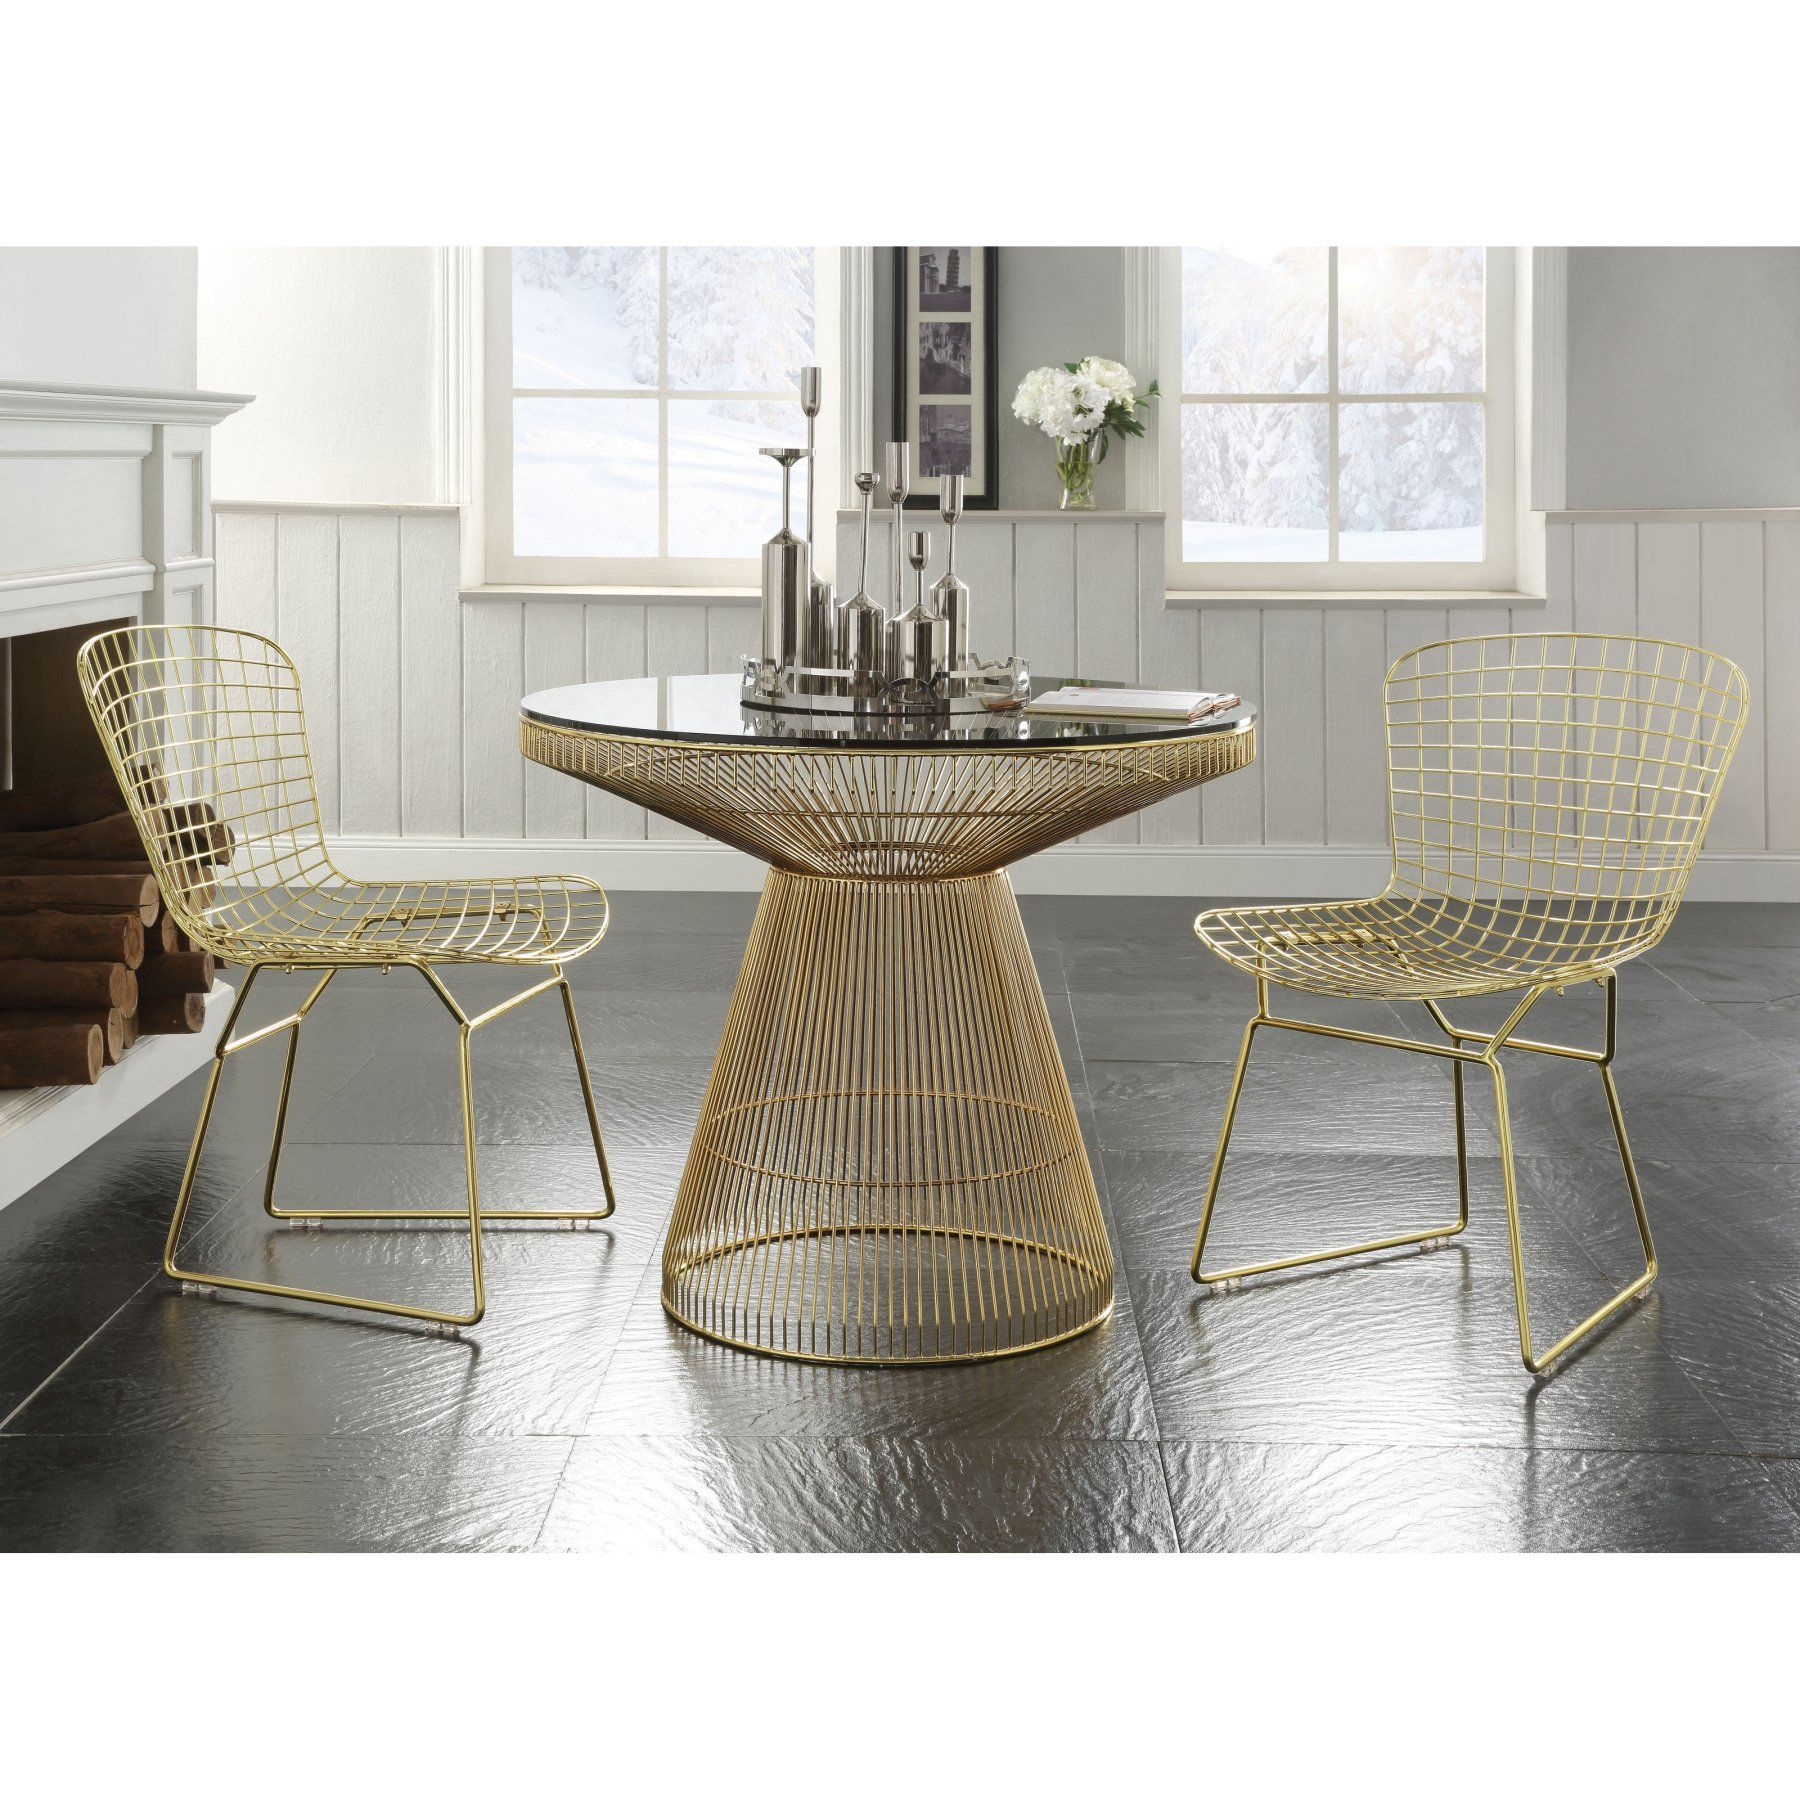 Acme Furniture Rianne 3 Piece Round Dining Table Set  Acm1757 Amazing Acme Dining Room Set Decorating Design